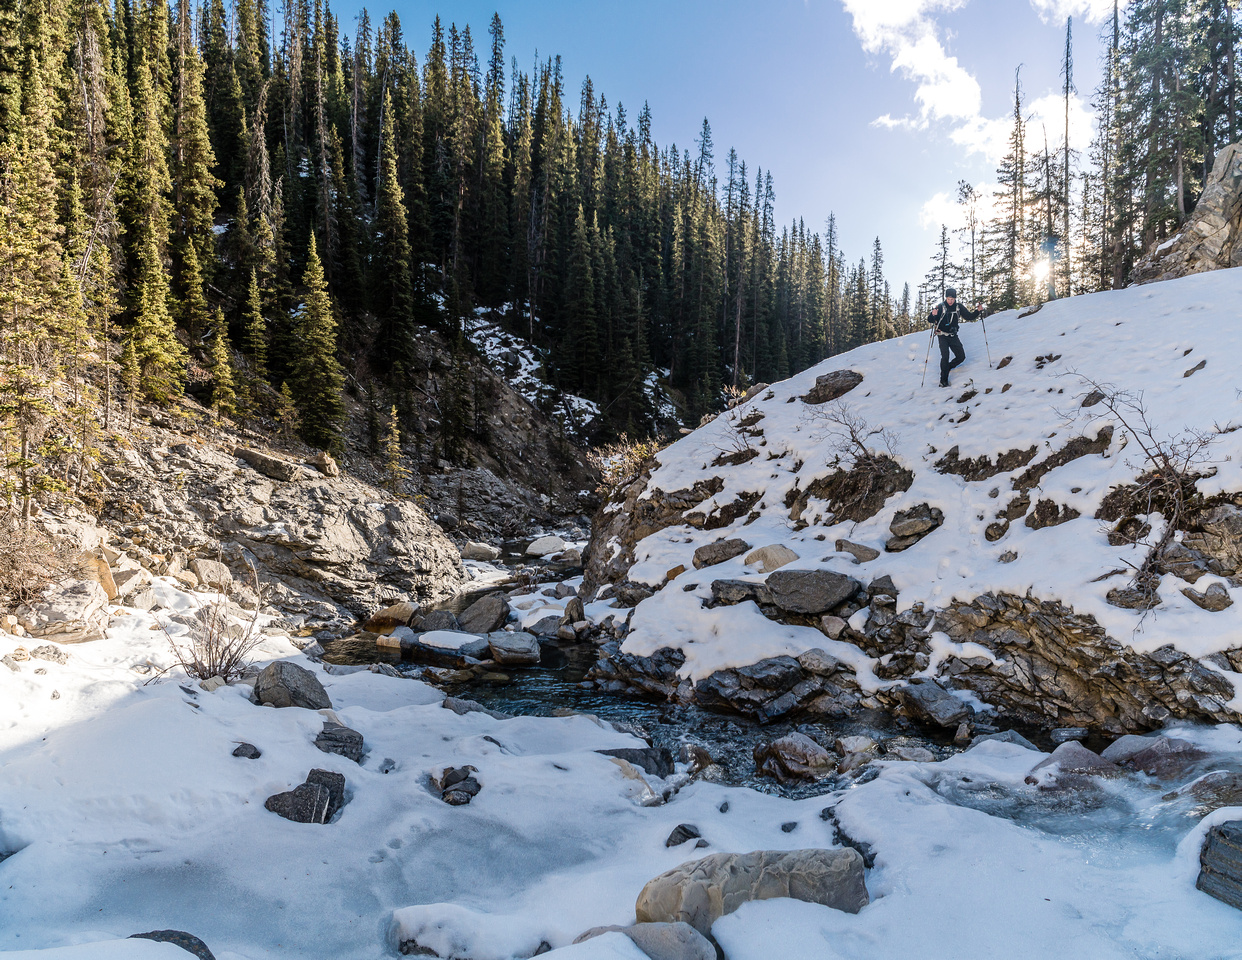 Lots of bypasses in the creek to get around waterfalls. The snow made it a bit tricky in spots.